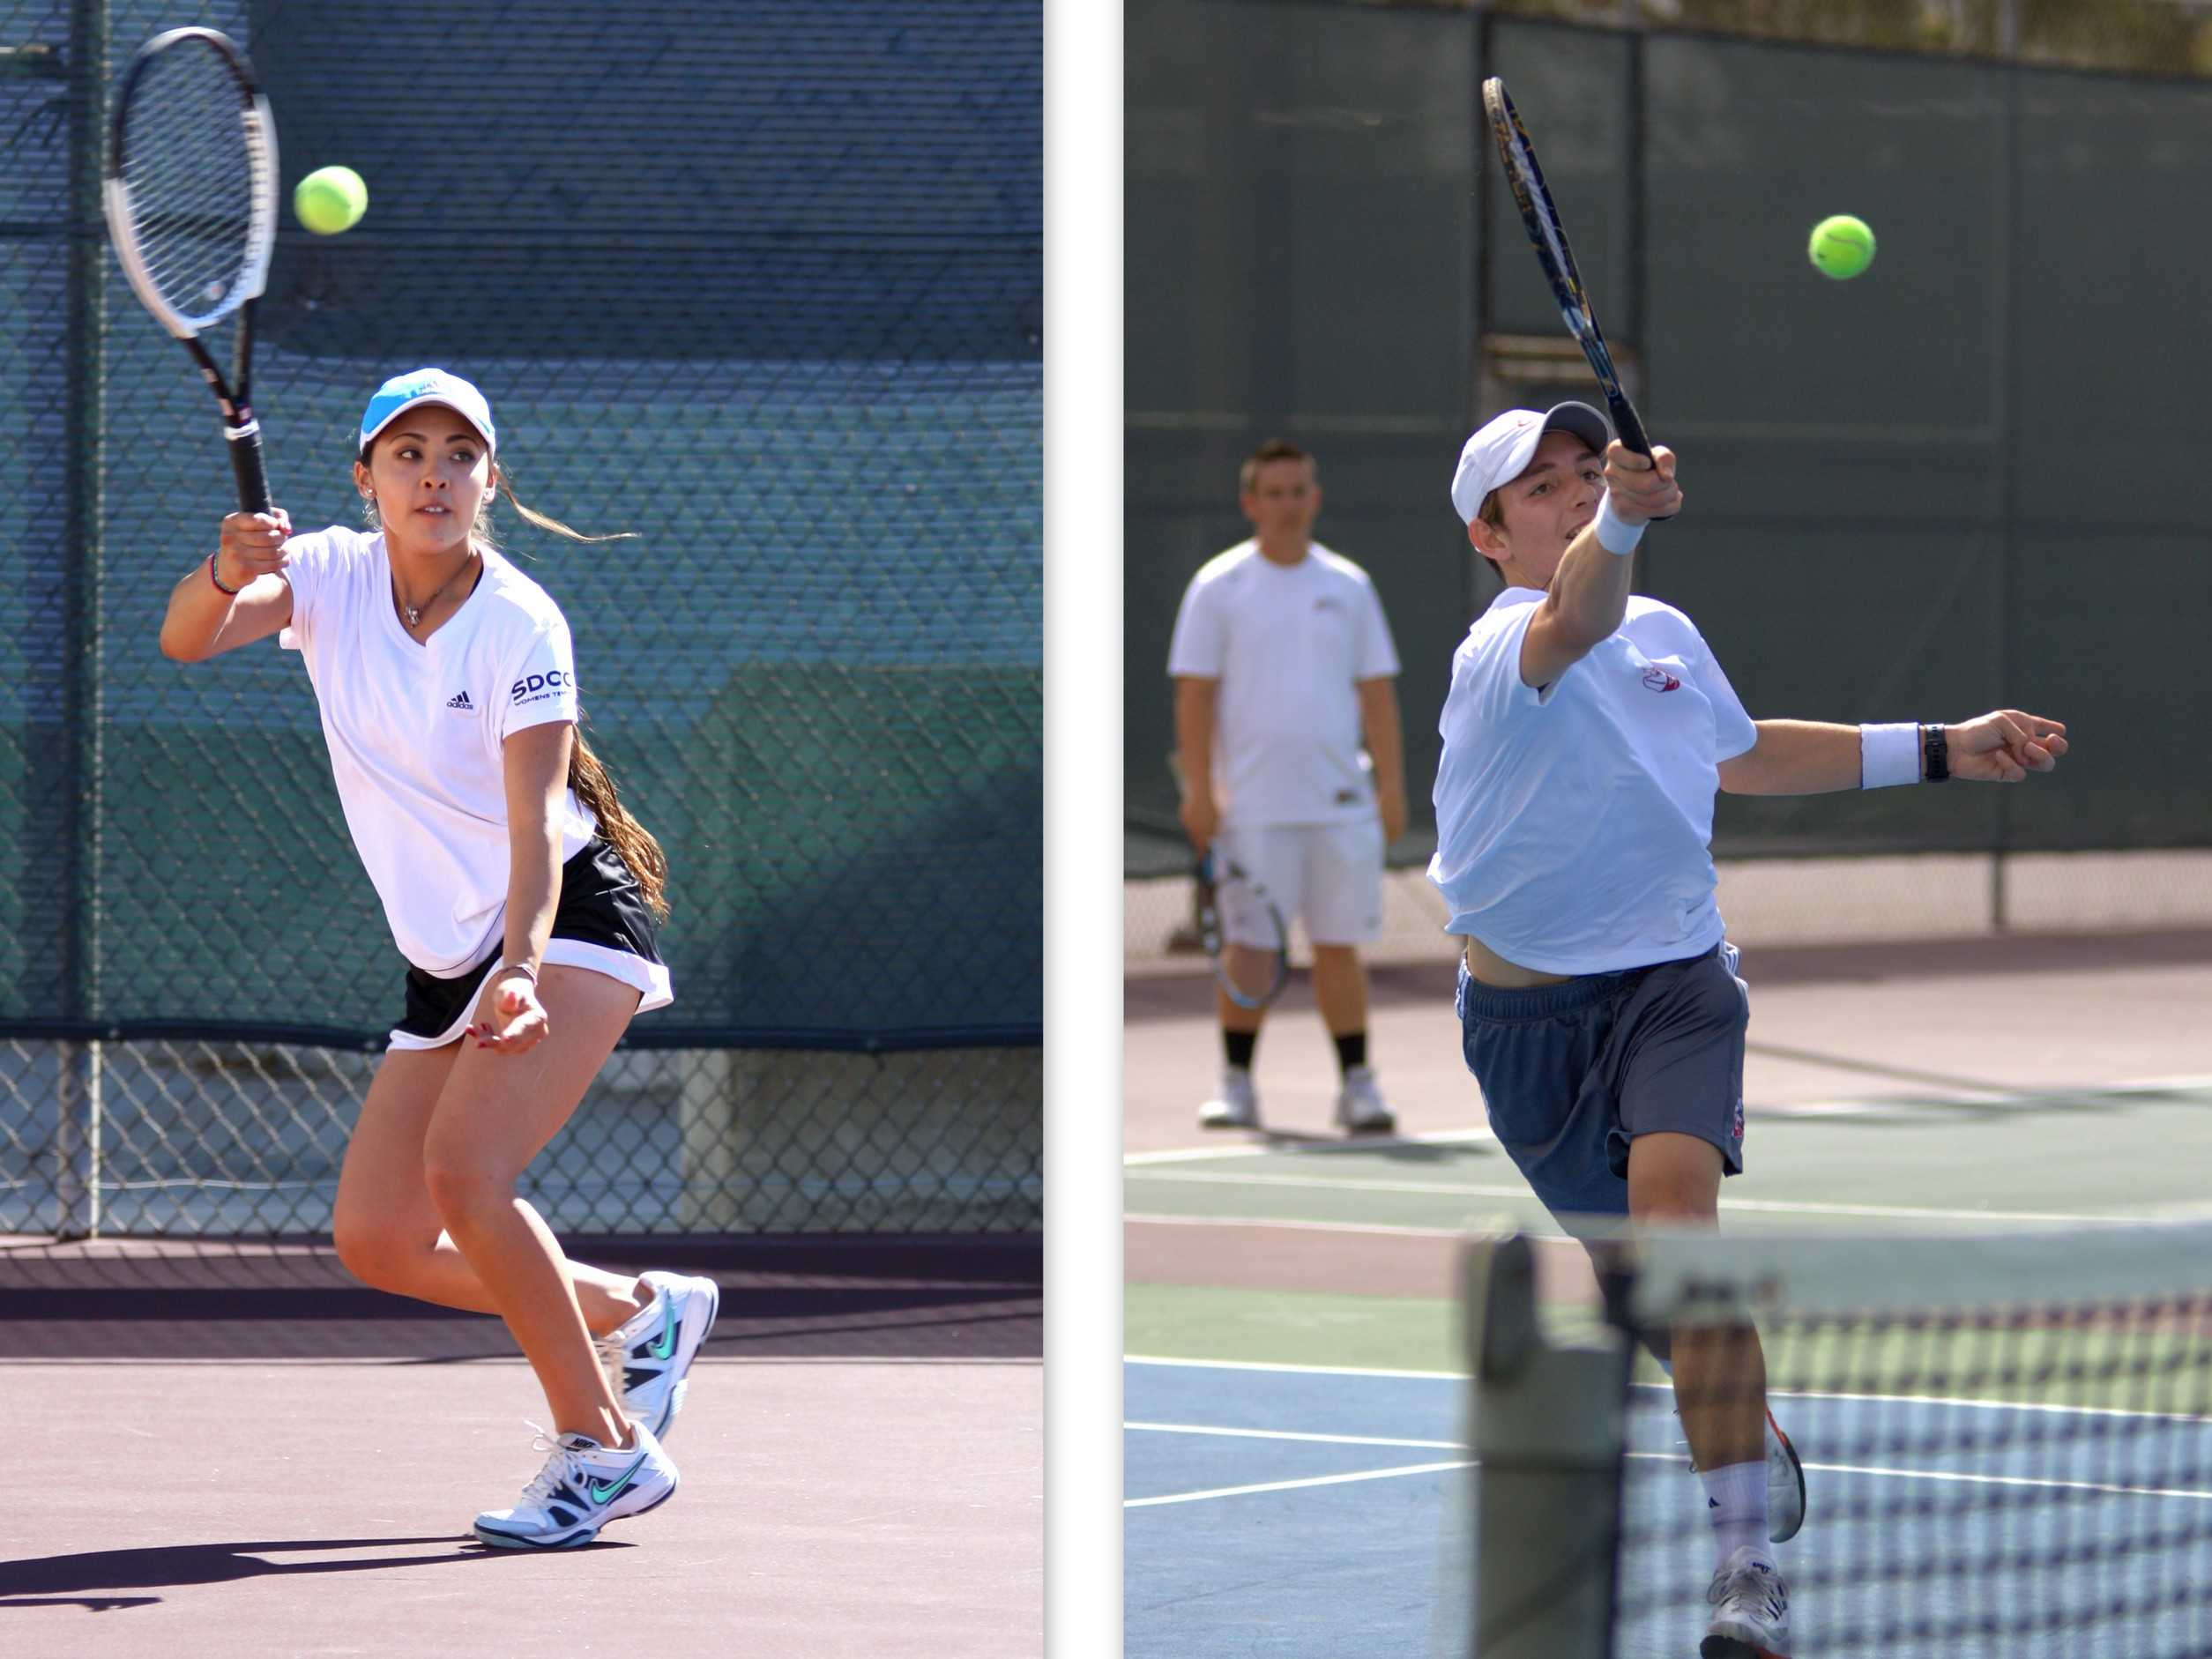 San Diego City College Knights freshmen tennis players Lily Yamauchi (left) and Logan Rinder (right) both reach for the ball during home matches on March 12  and 17, respectively against Palomar College at the SDCC Tennis Courts. Photo credit: David Pradel